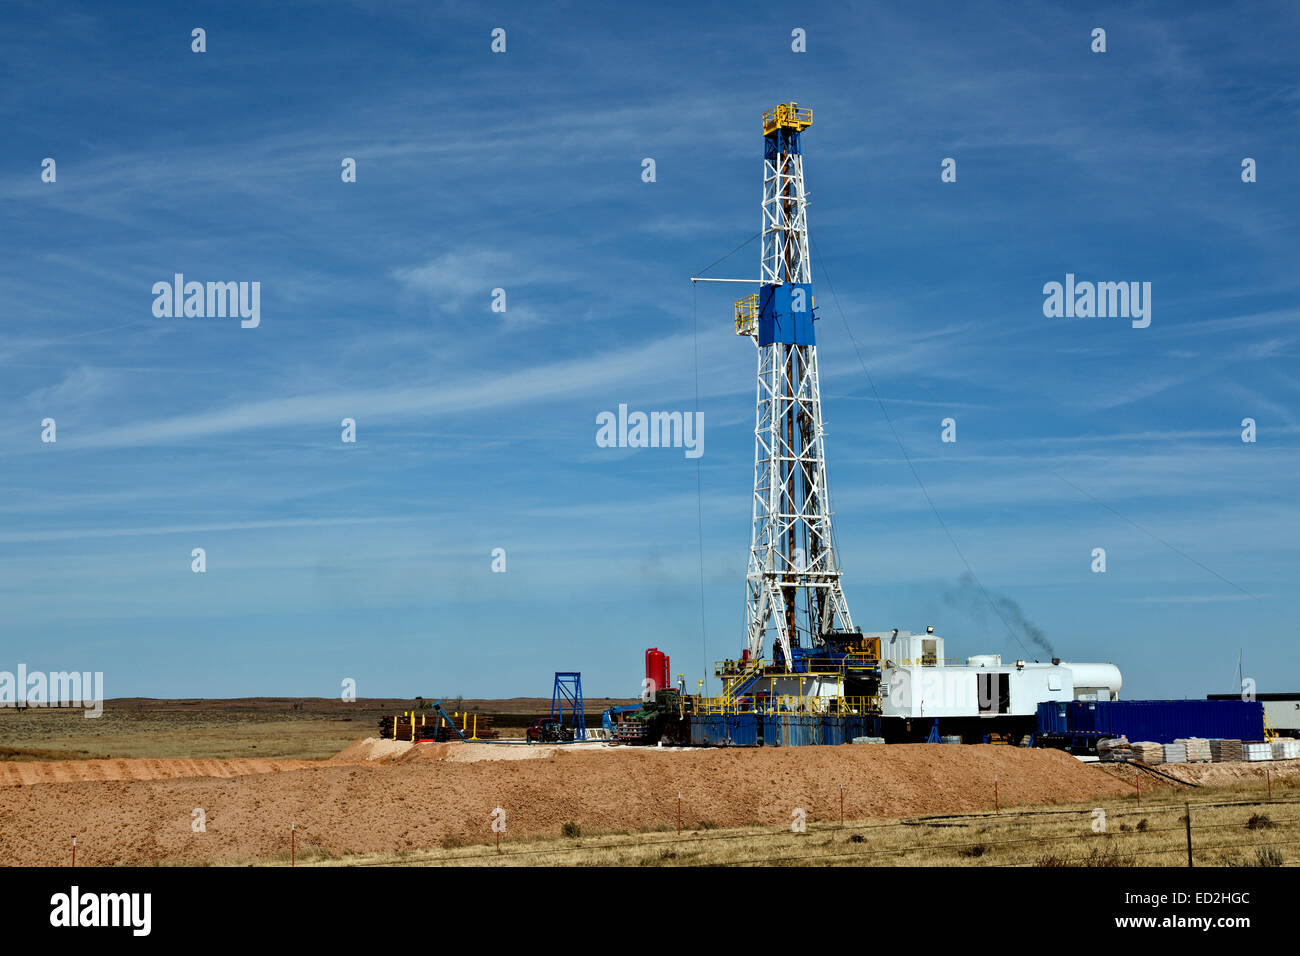 Flex drill rig operating, Texas - Stock Image